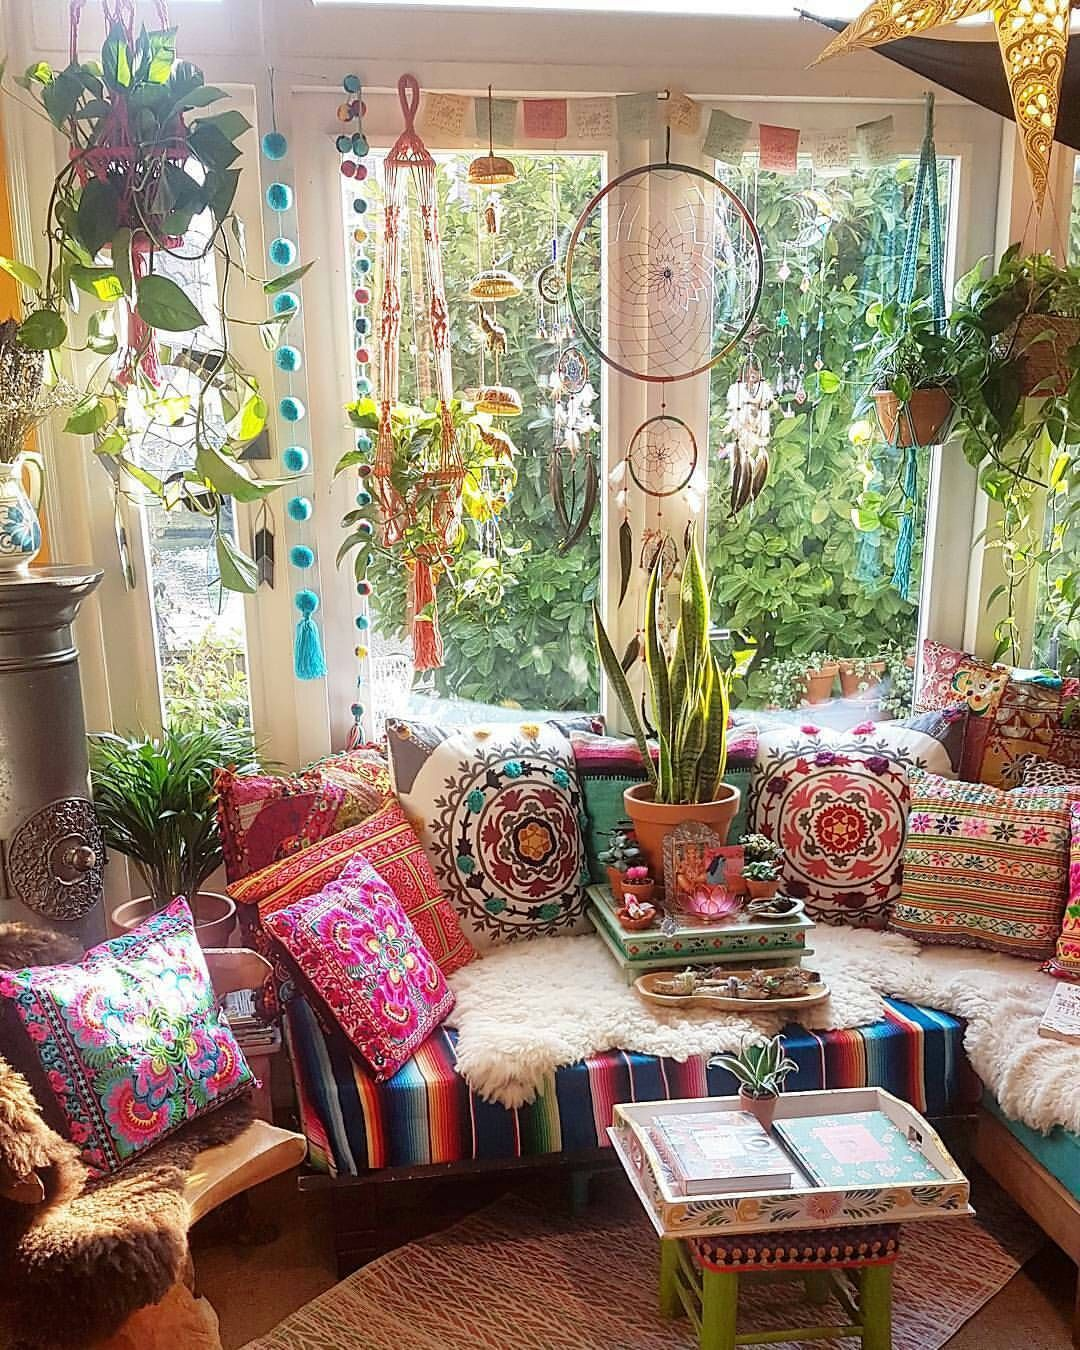 Home Decor Inspiration On Instagram How S The Christmas: Pin On Secret Magical Gypsy Exotic And Oriental Bohemian